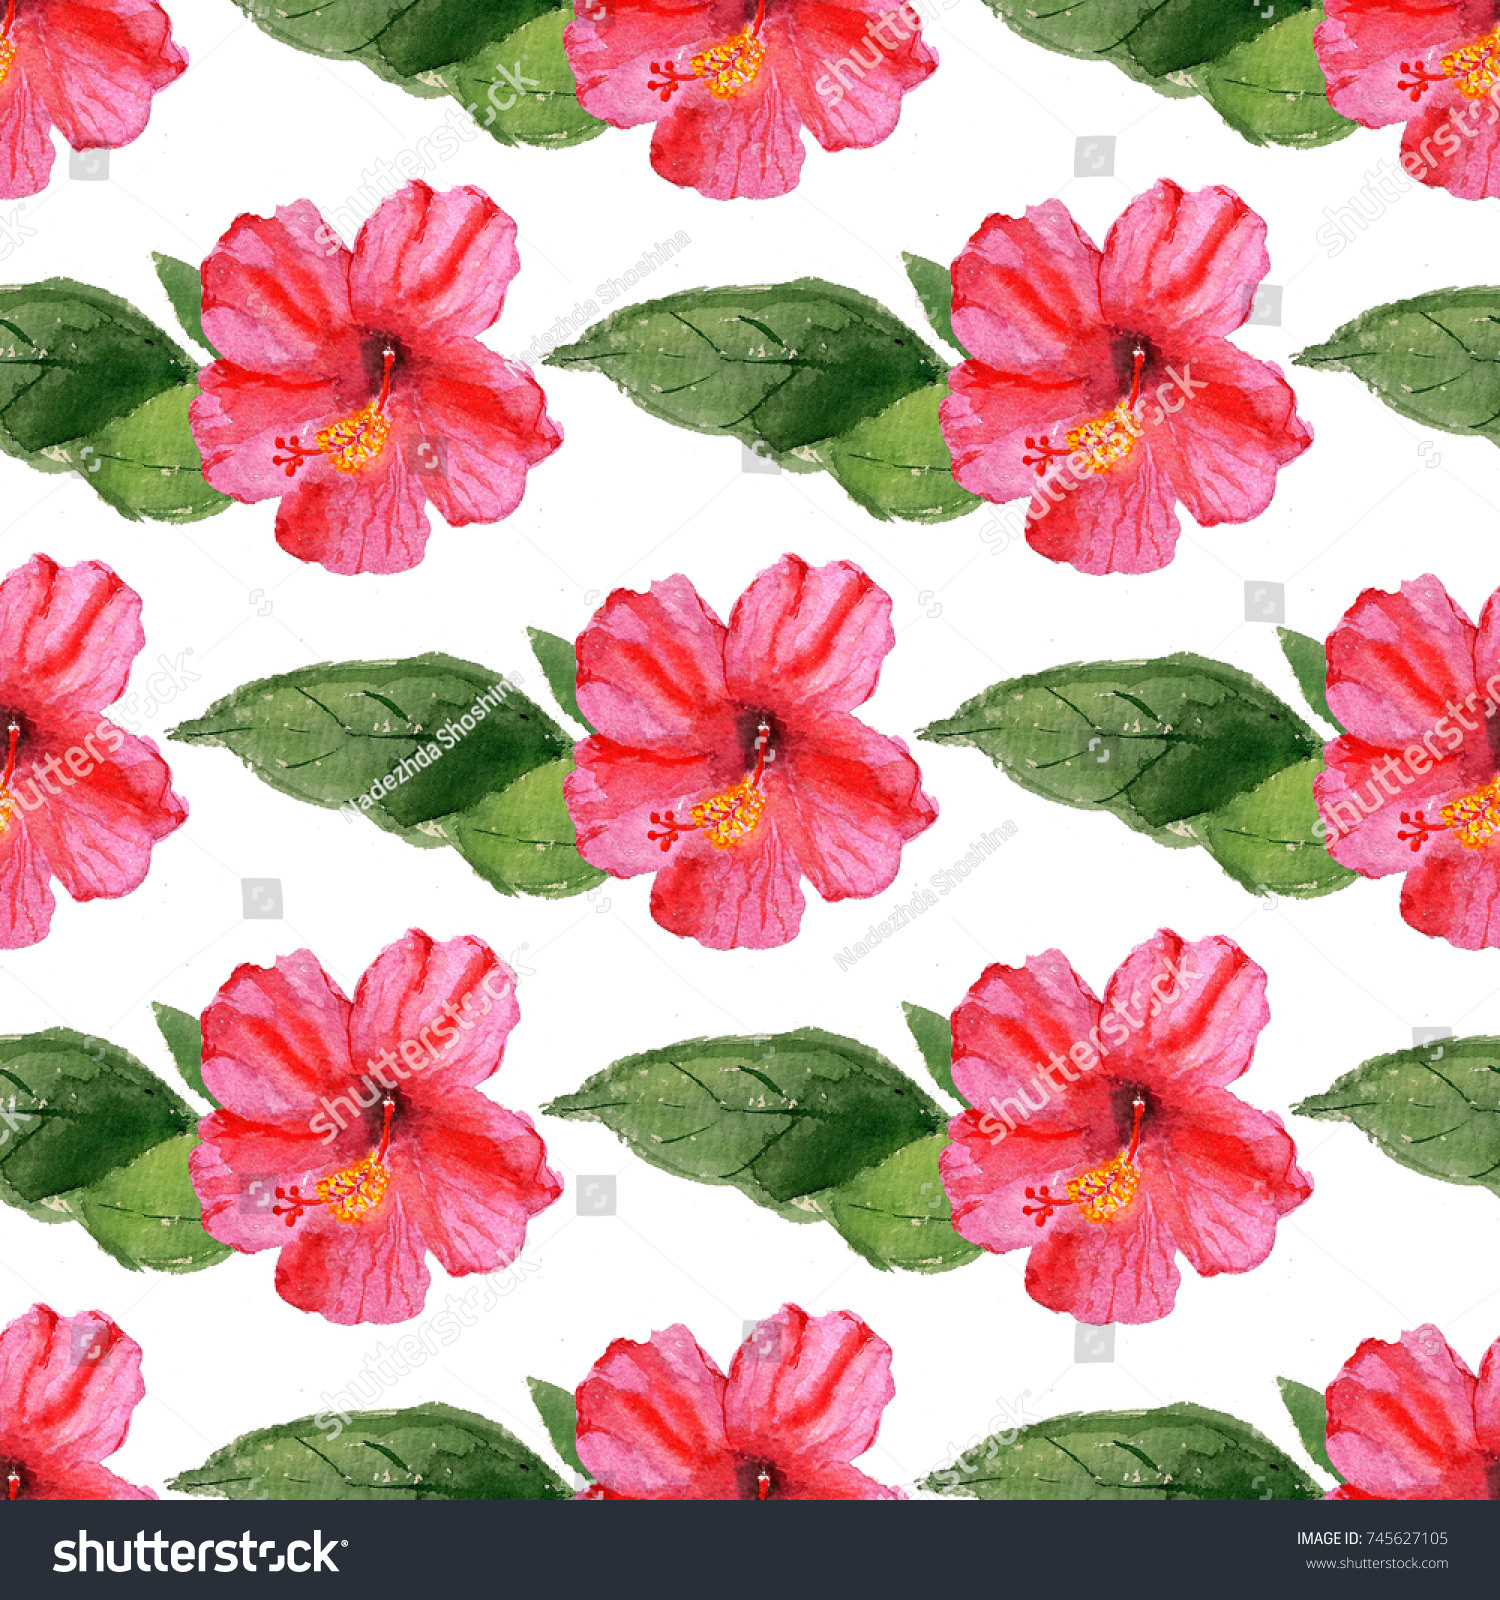 Seamless pattern watercolor image hibiscus flower stock illustration seamless pattern with watercolor image of hibiscus flower good for textile fabric design wrapping izmirmasajfo